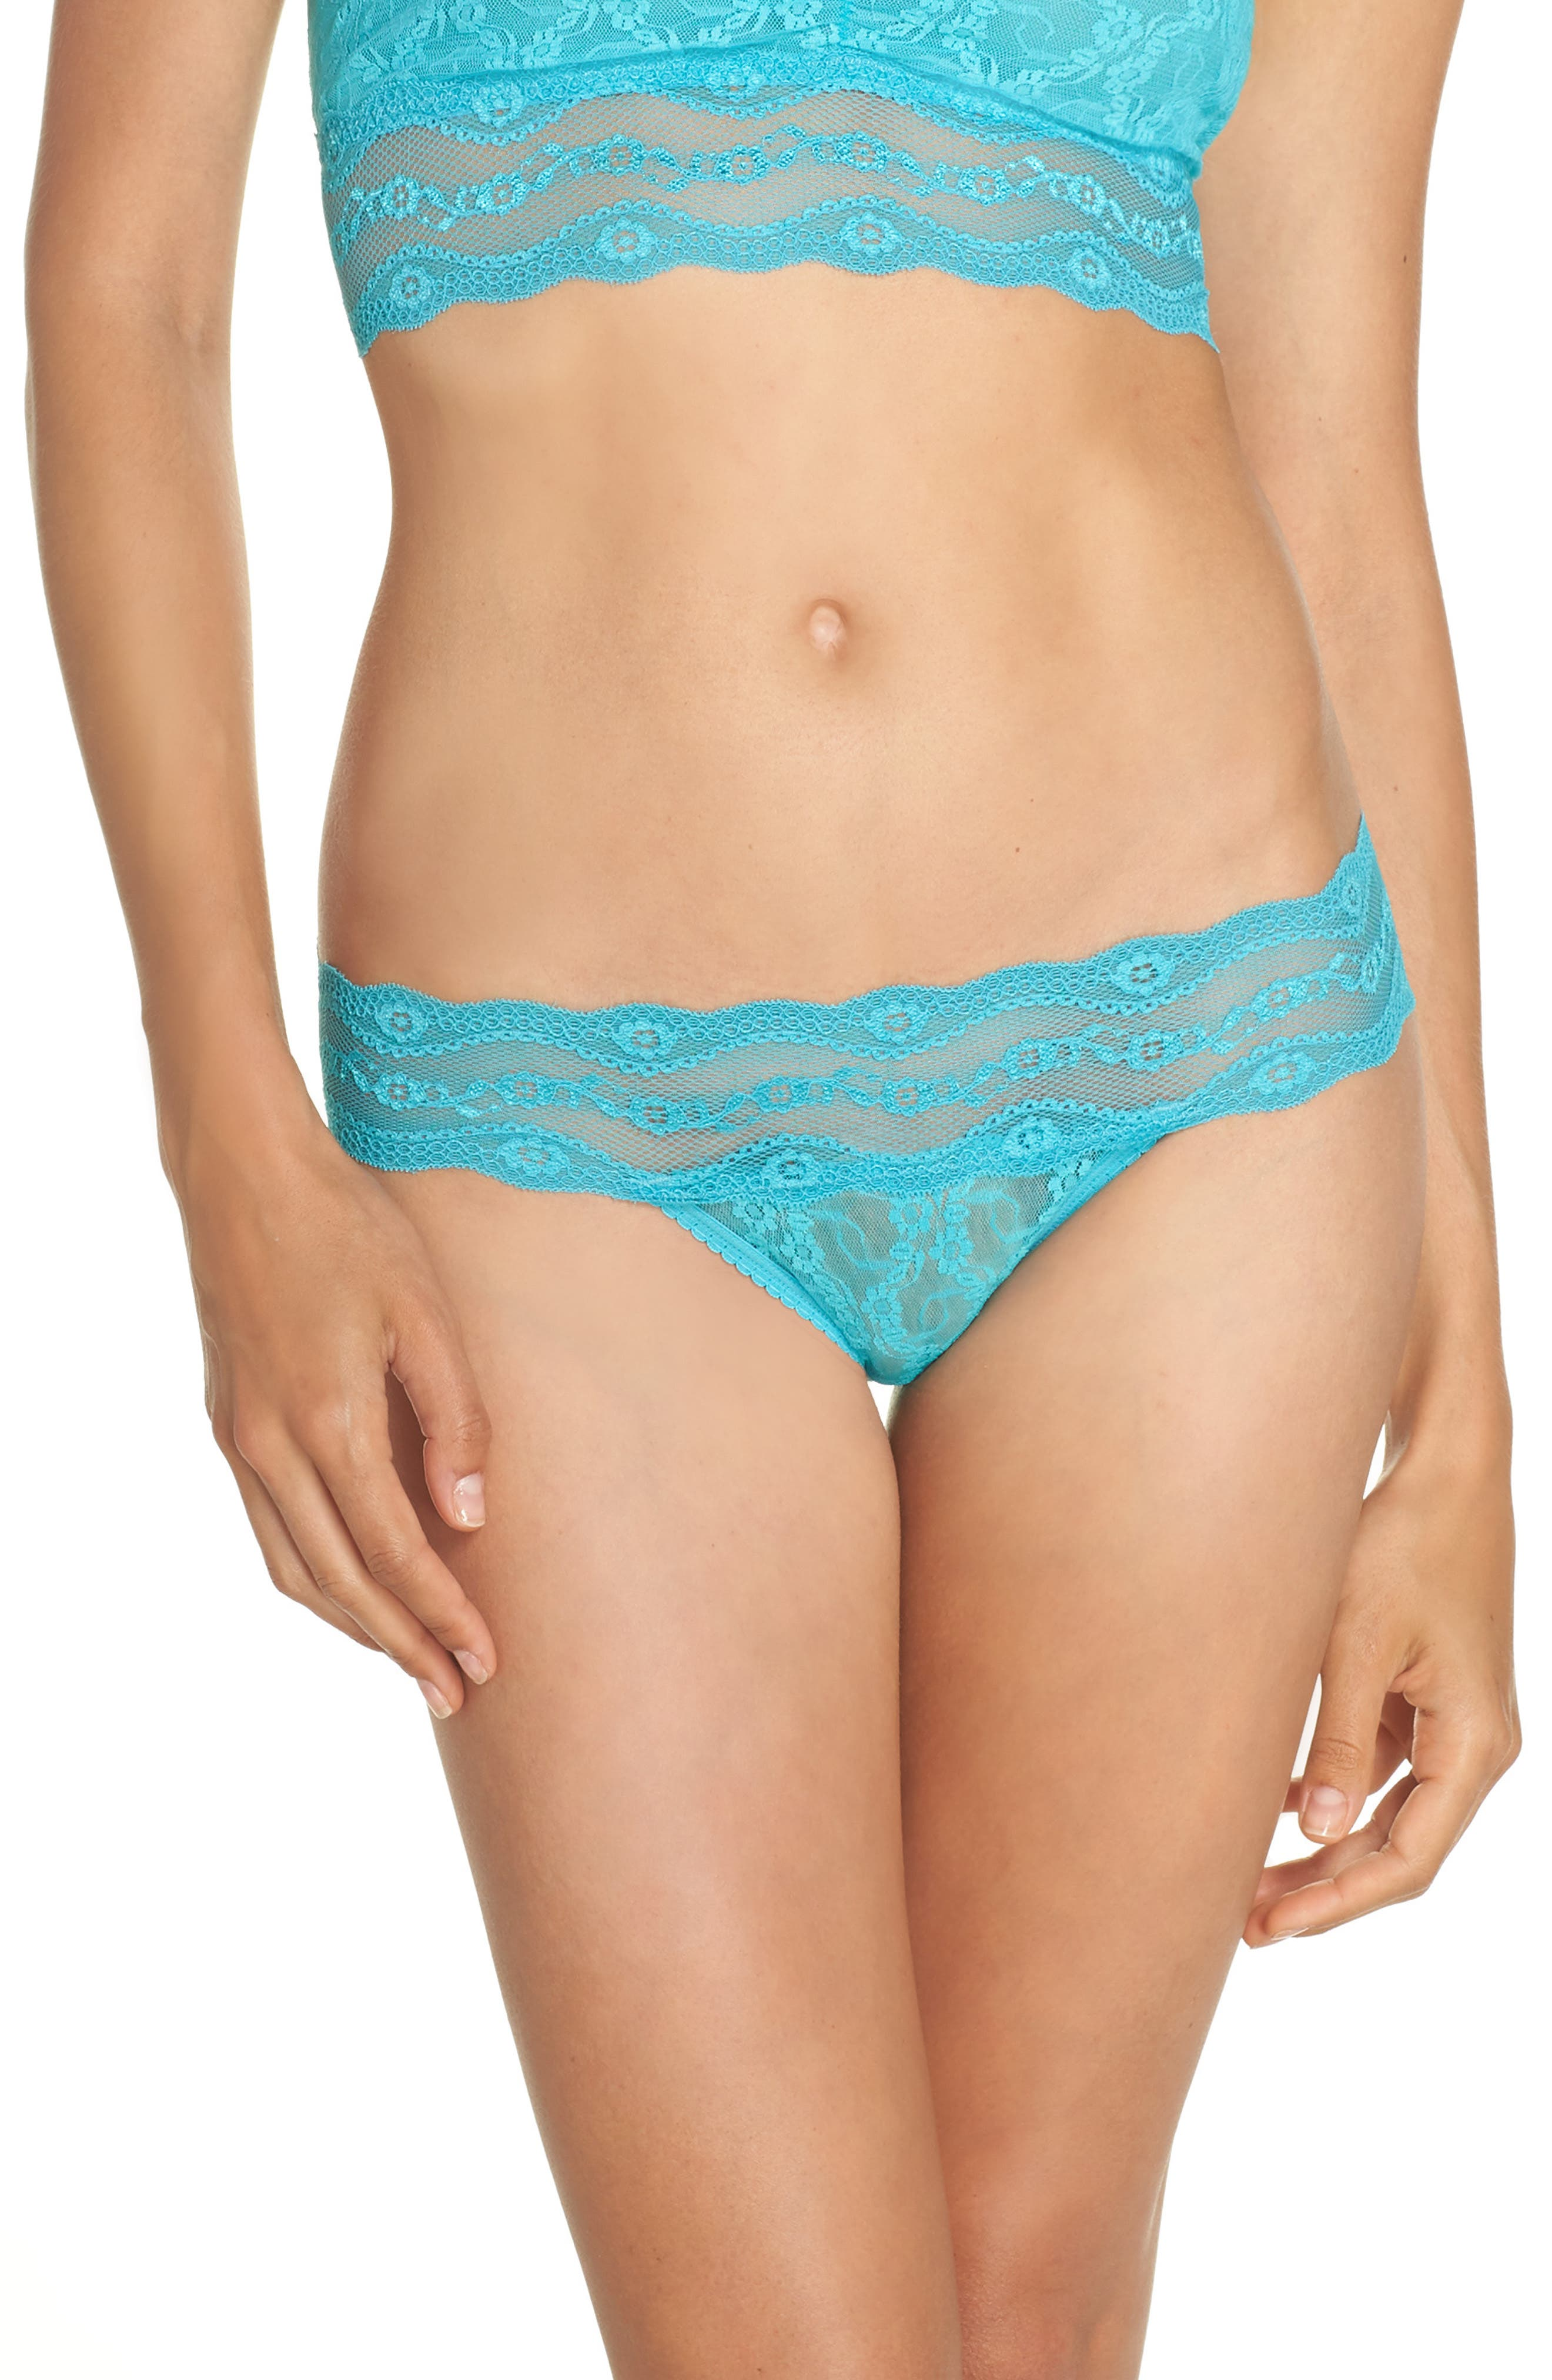 'Lace Kiss' Bikini,                             Main thumbnail 1, color,                             Peacock Blue